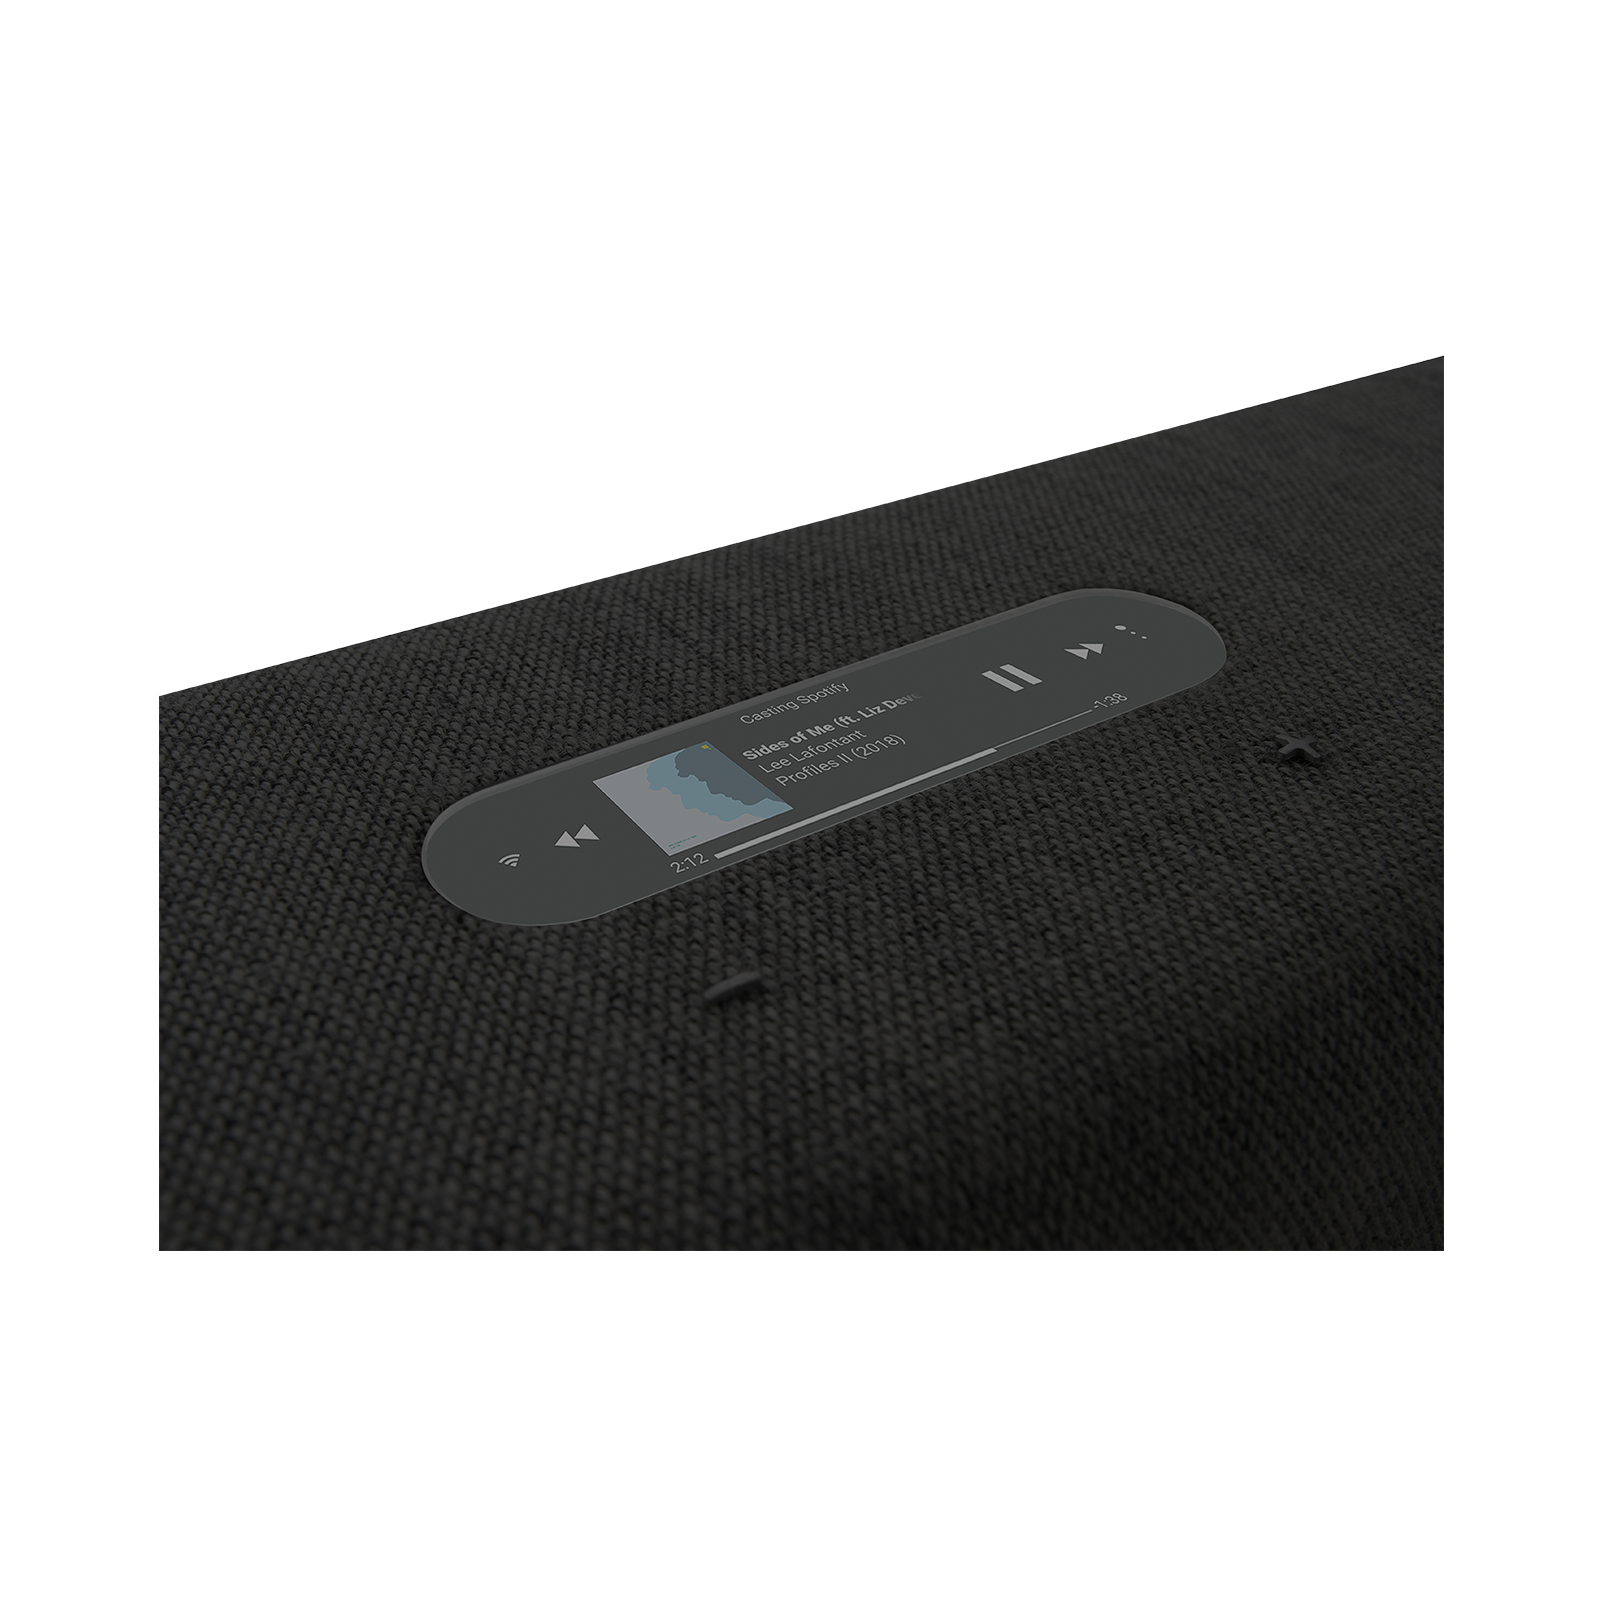 Harman Kardon Citation Bar - Black - The smartest soundbar for movies and music - Detailshot 1